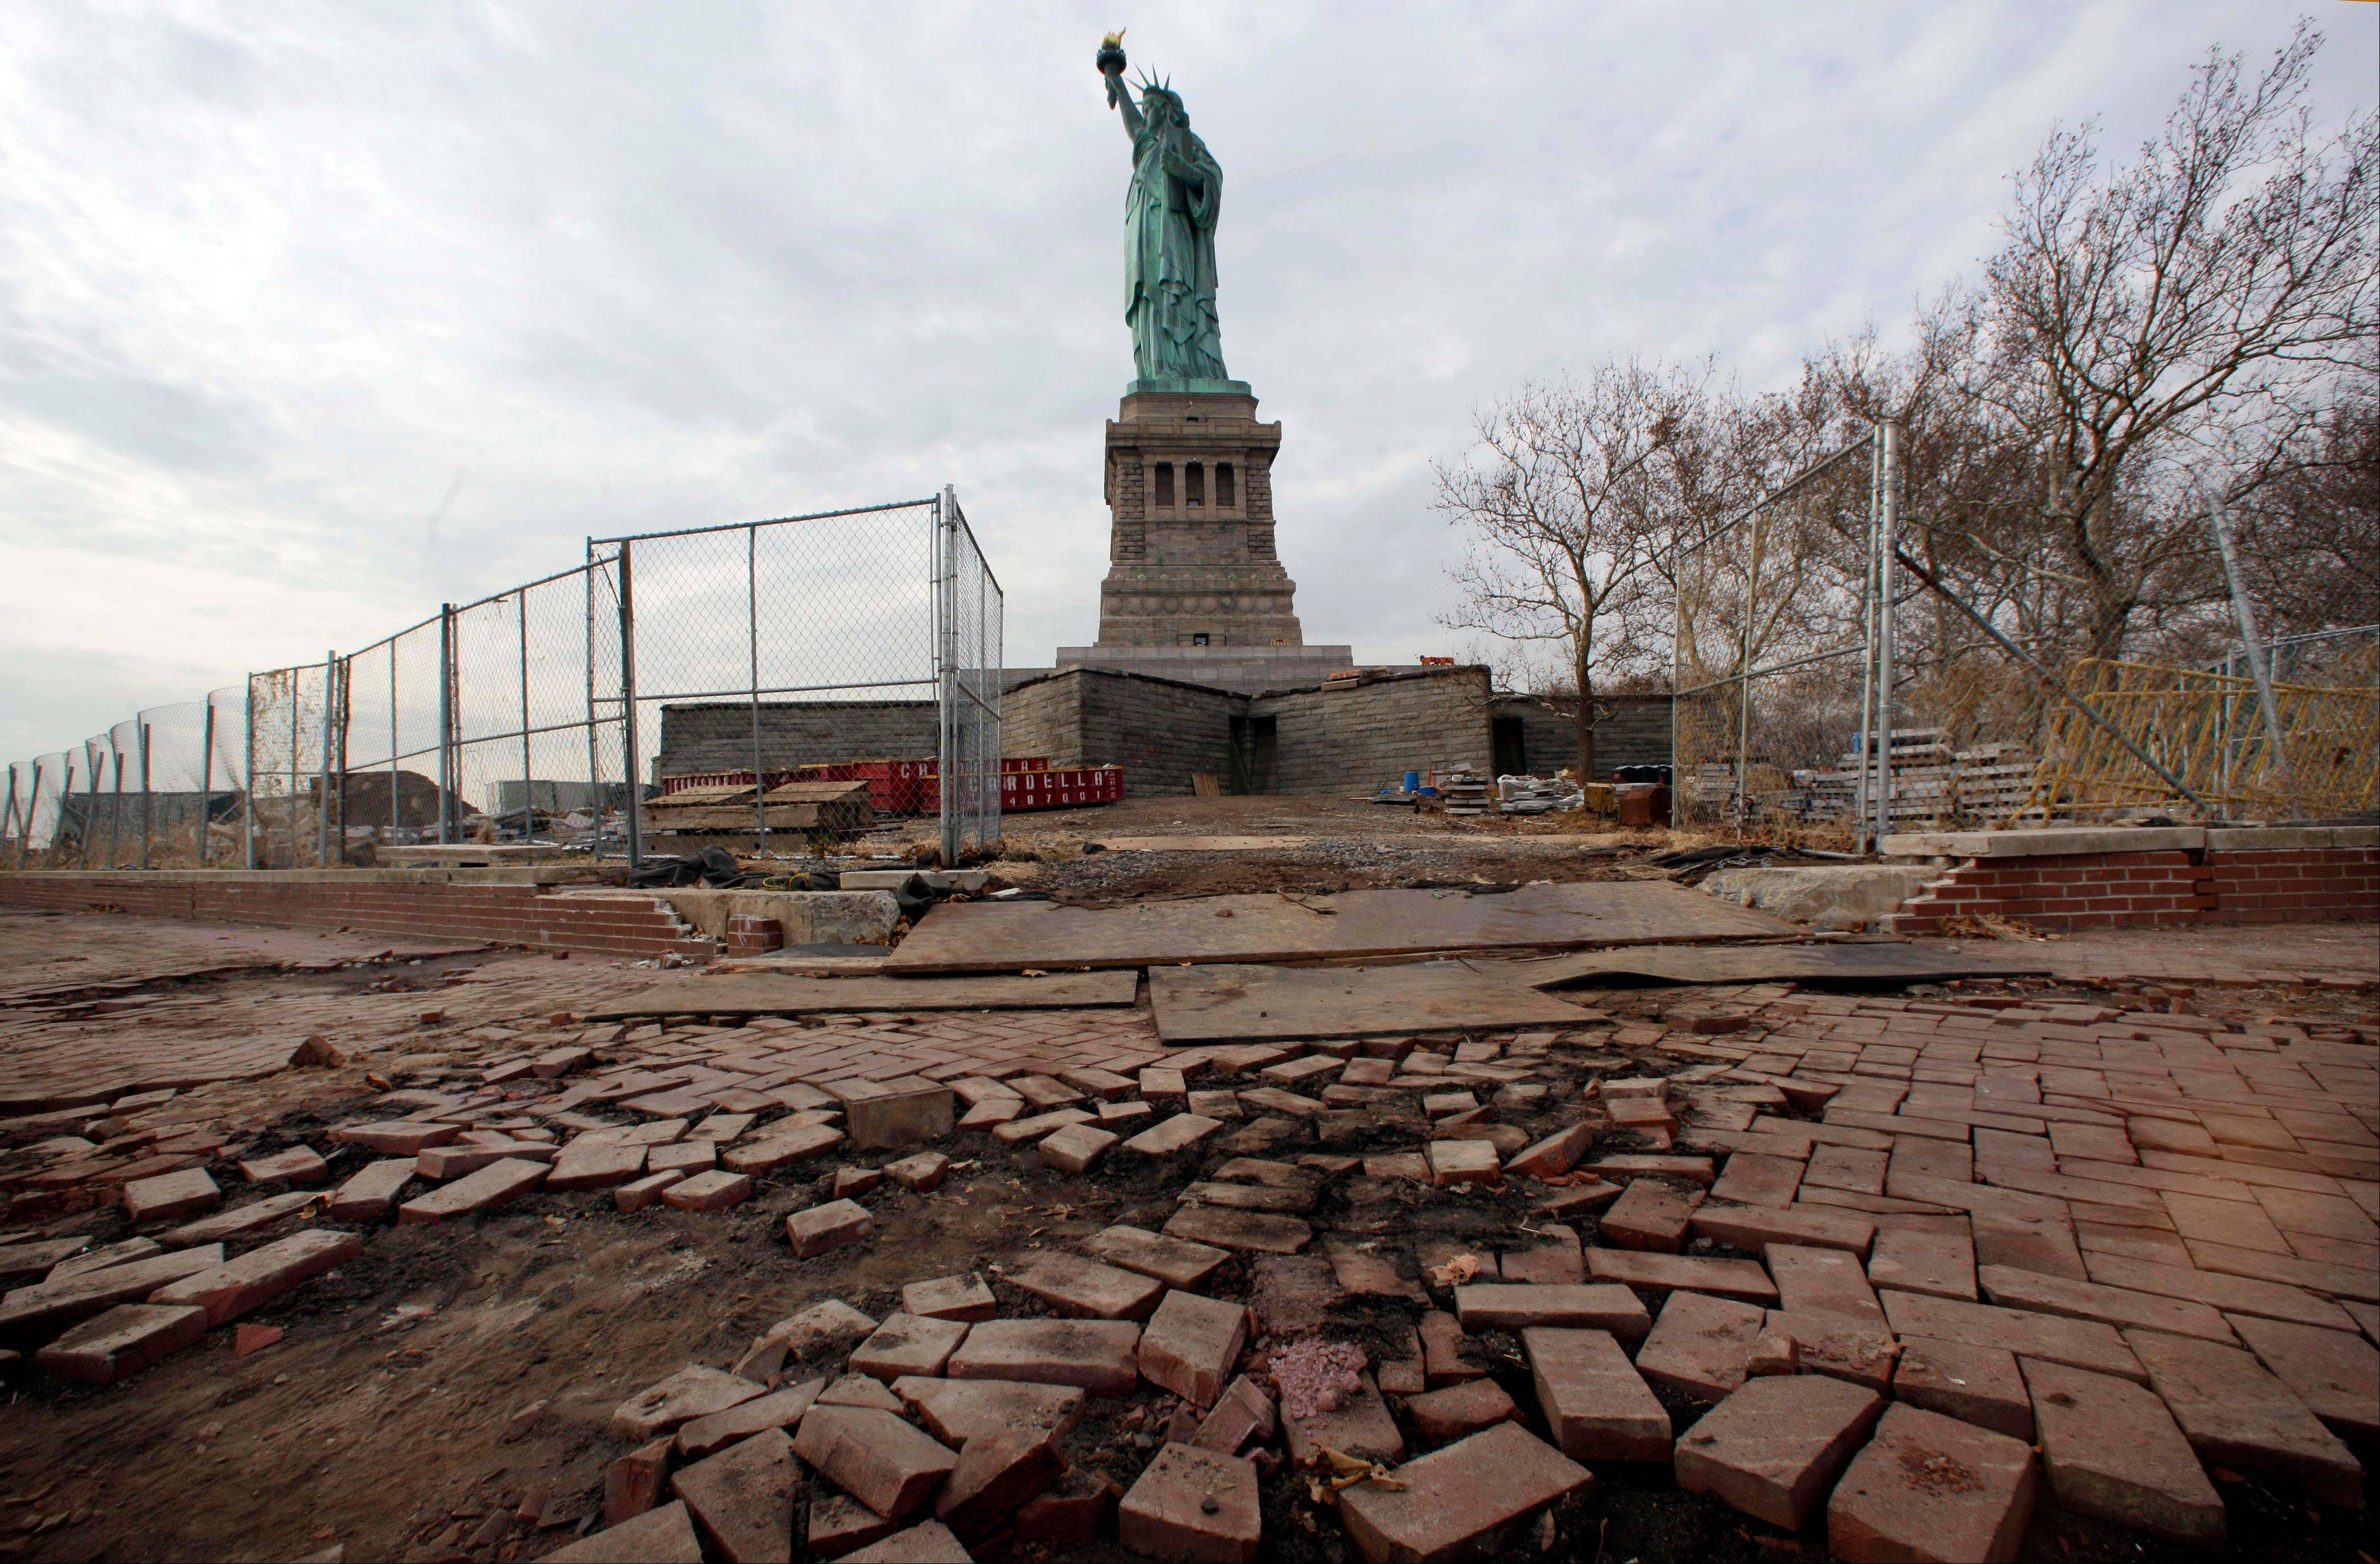 Parts of the brick walkway of Liberty Island that were damaged in Superstorm Sandy are shown during a tour of New York�s Liberty Island.